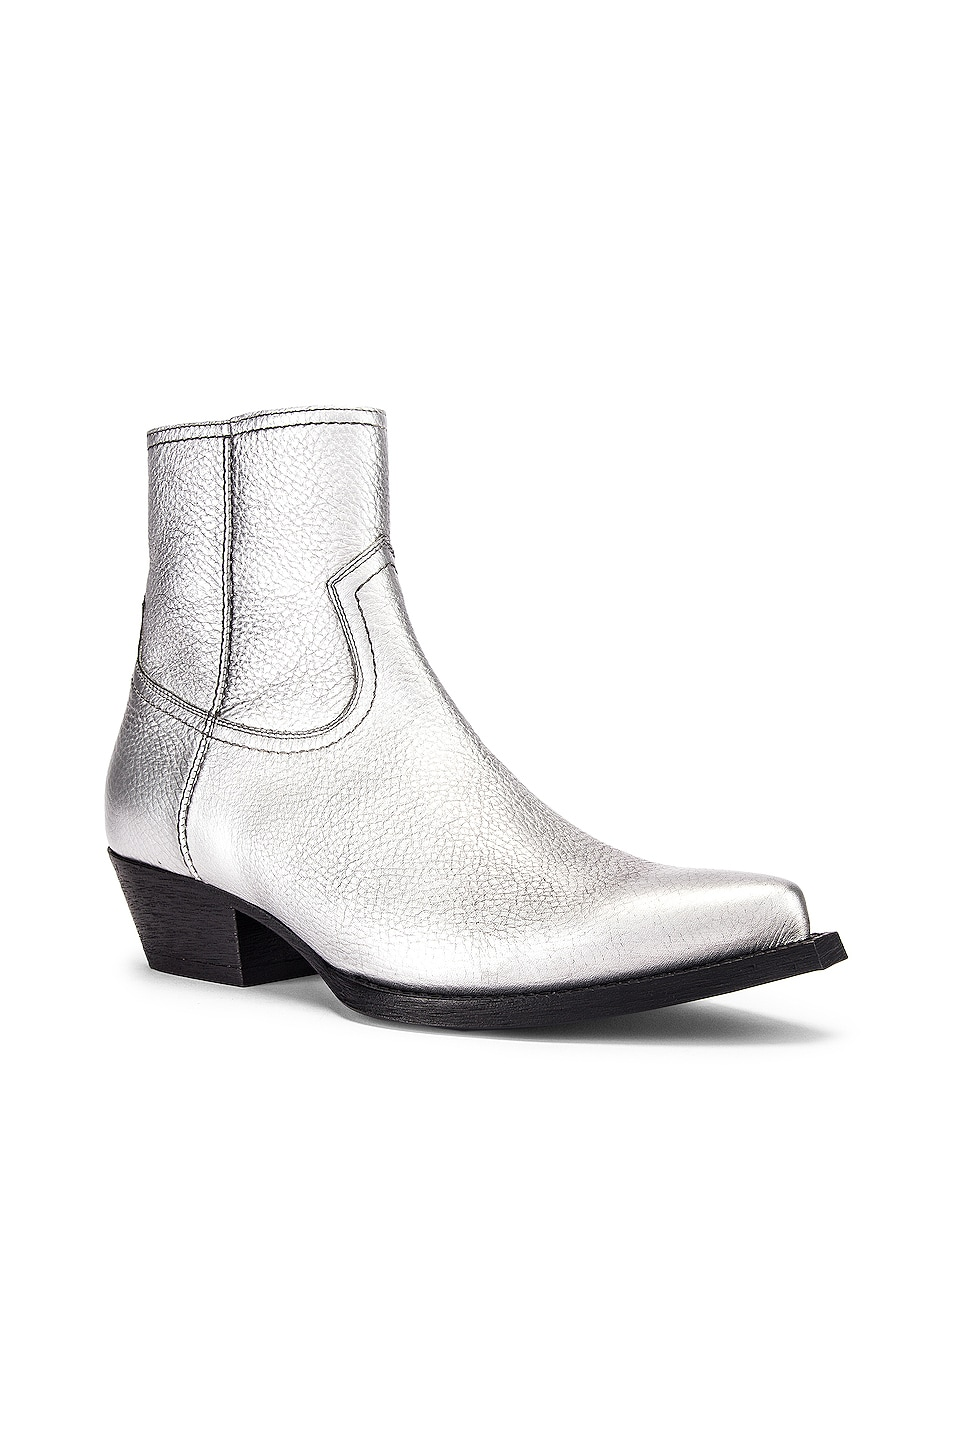 Image 2 of Saint Laurent Lukas Ankle Boots in Silver